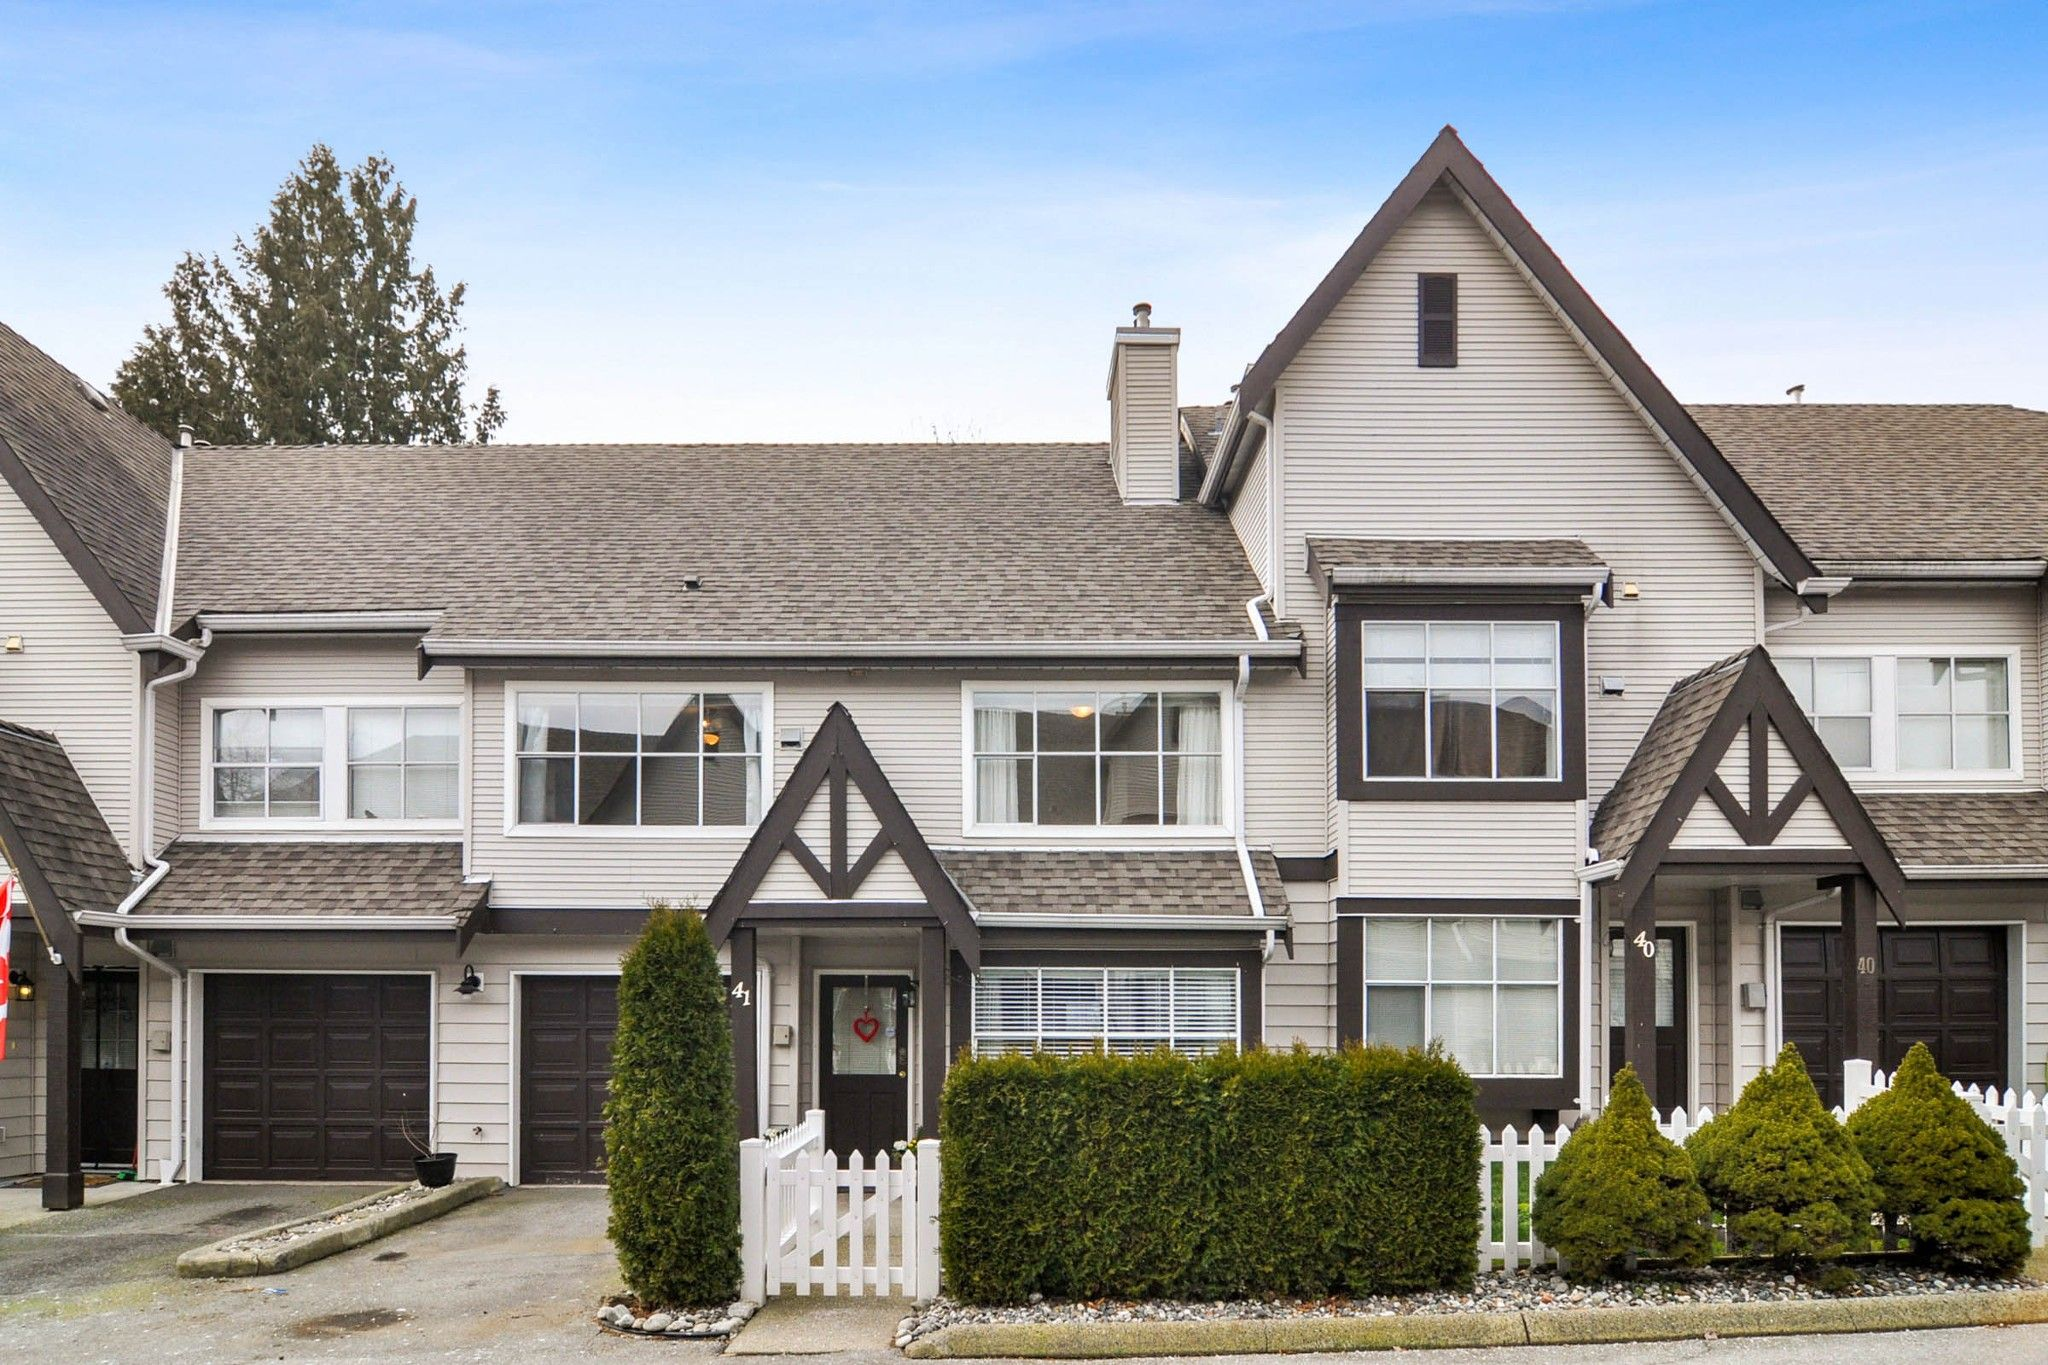 """Main Photo: 41 12099 237 Street in Maple Ridge: East Central Townhouse for sale in """"Gabriola"""" : MLS®# R2539715"""